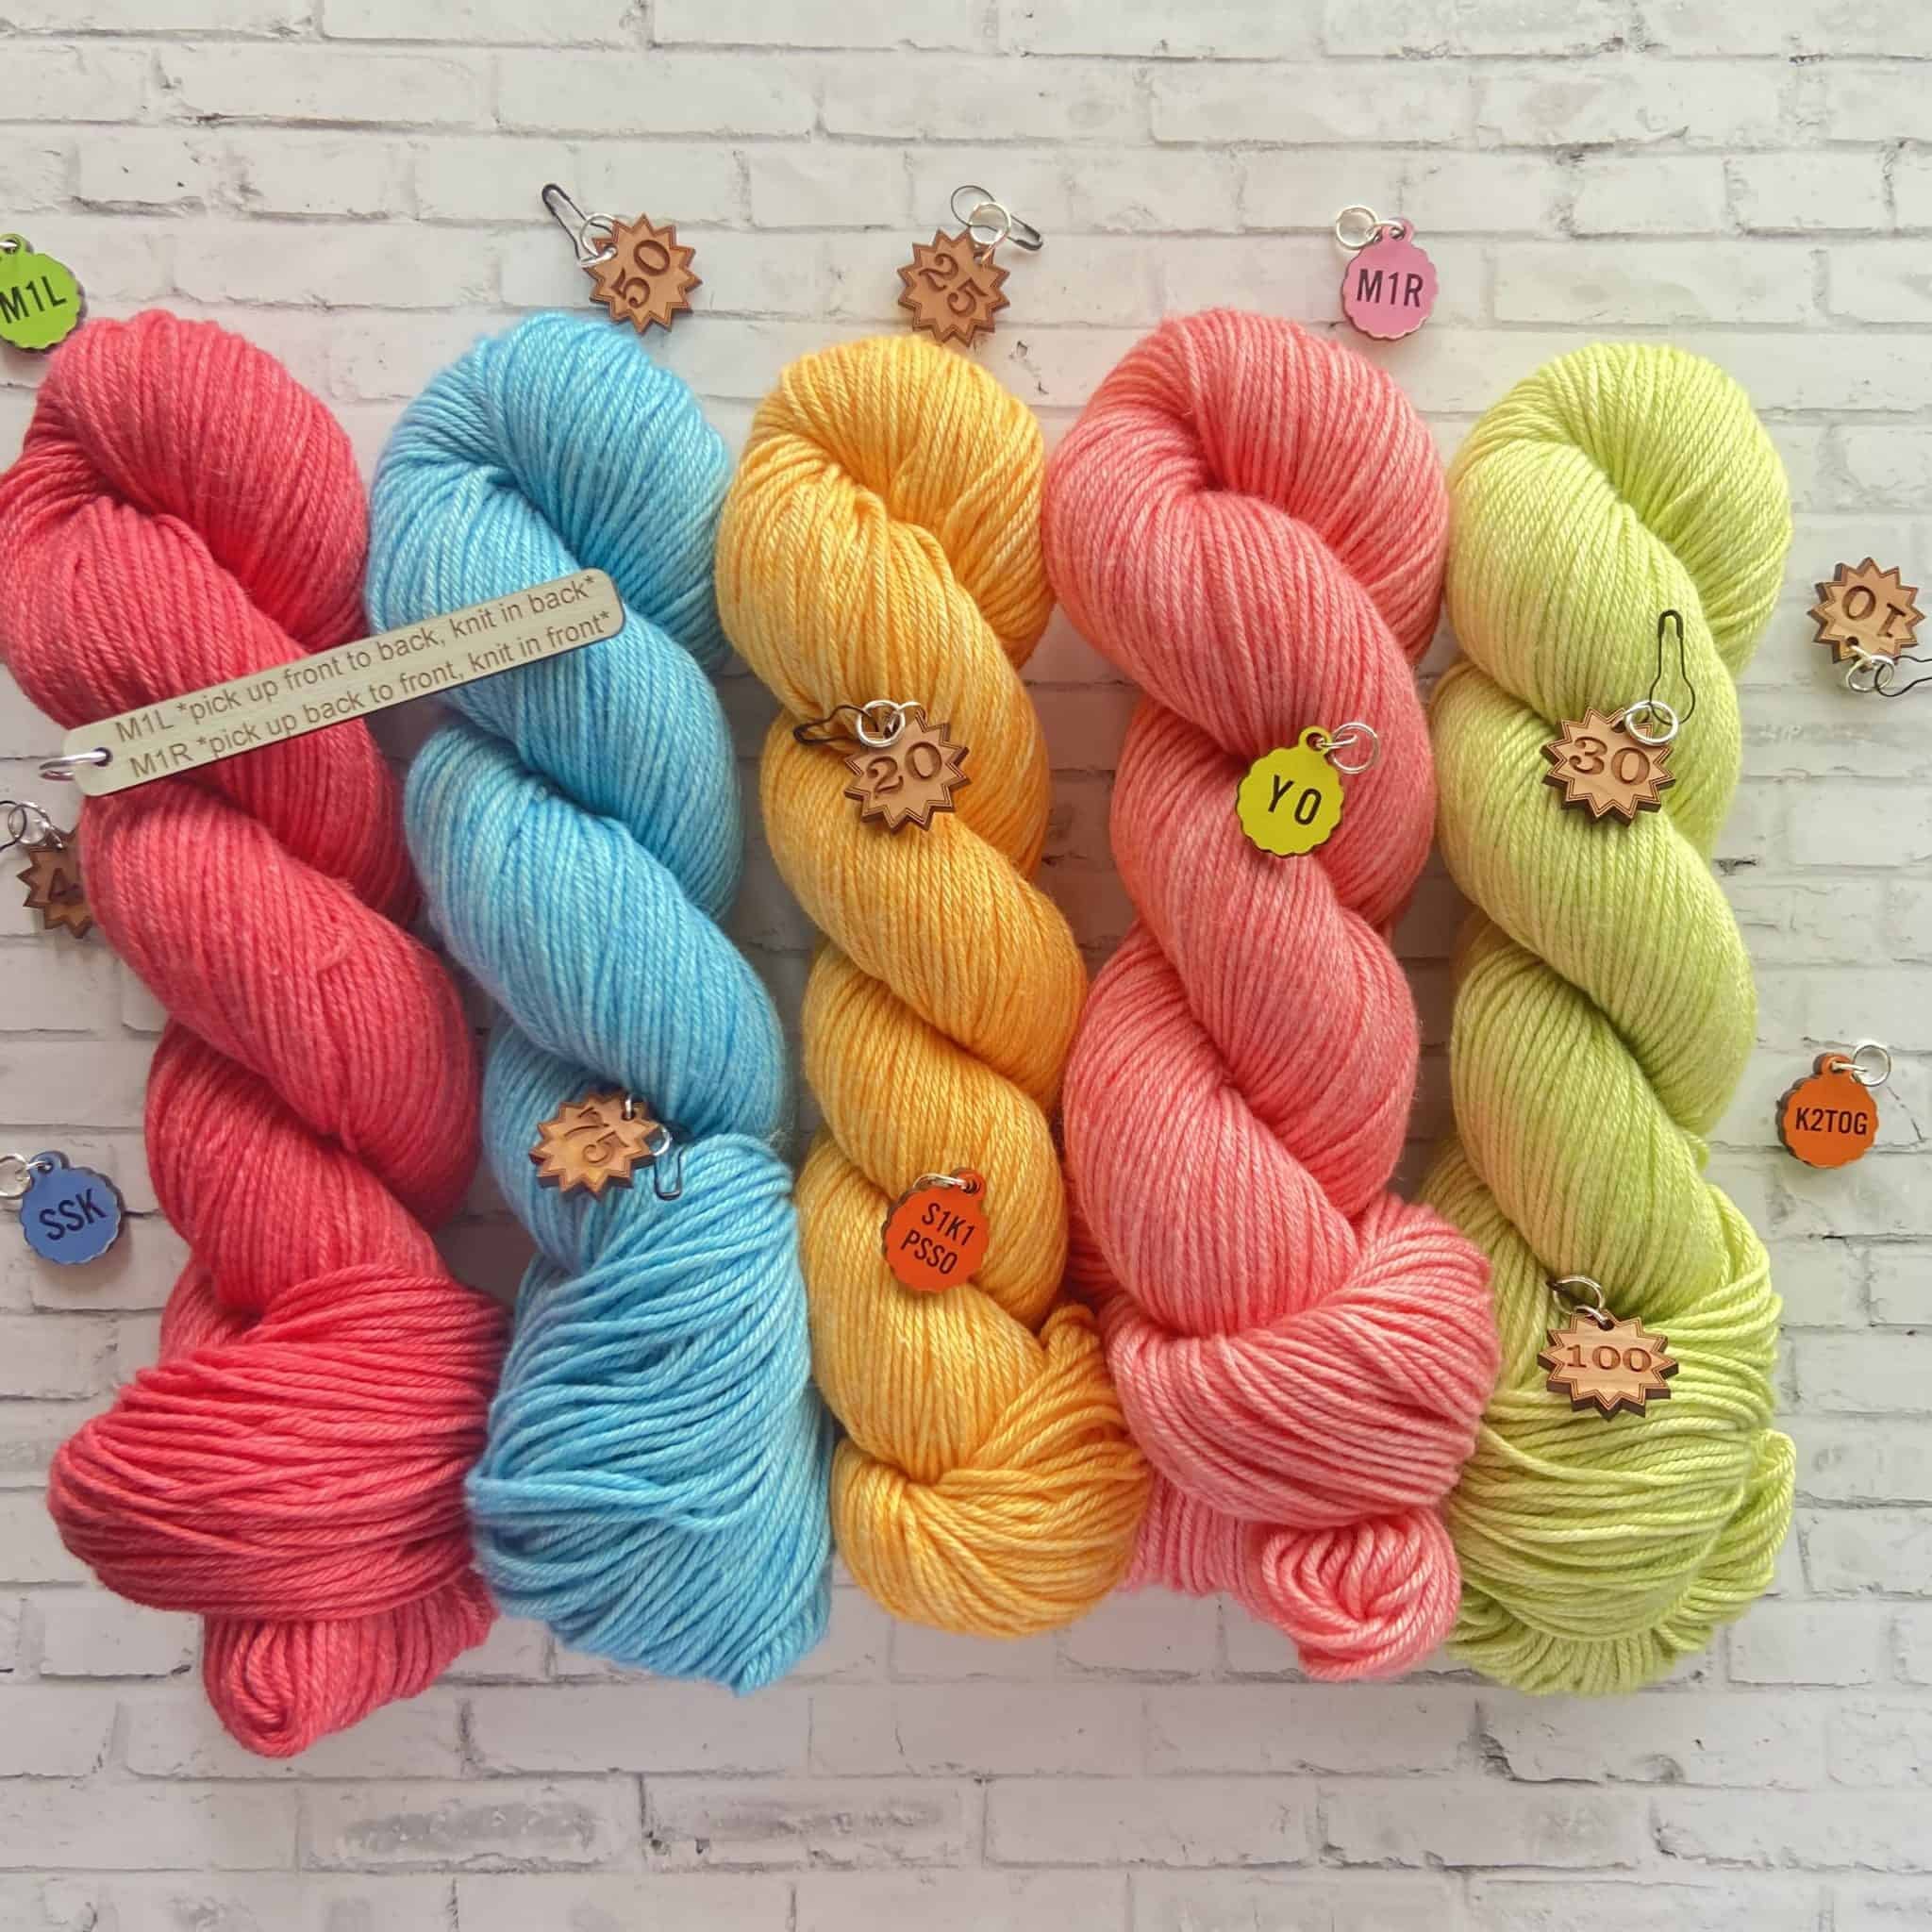 Skeins of bright pink, blue, orange and green yarn.